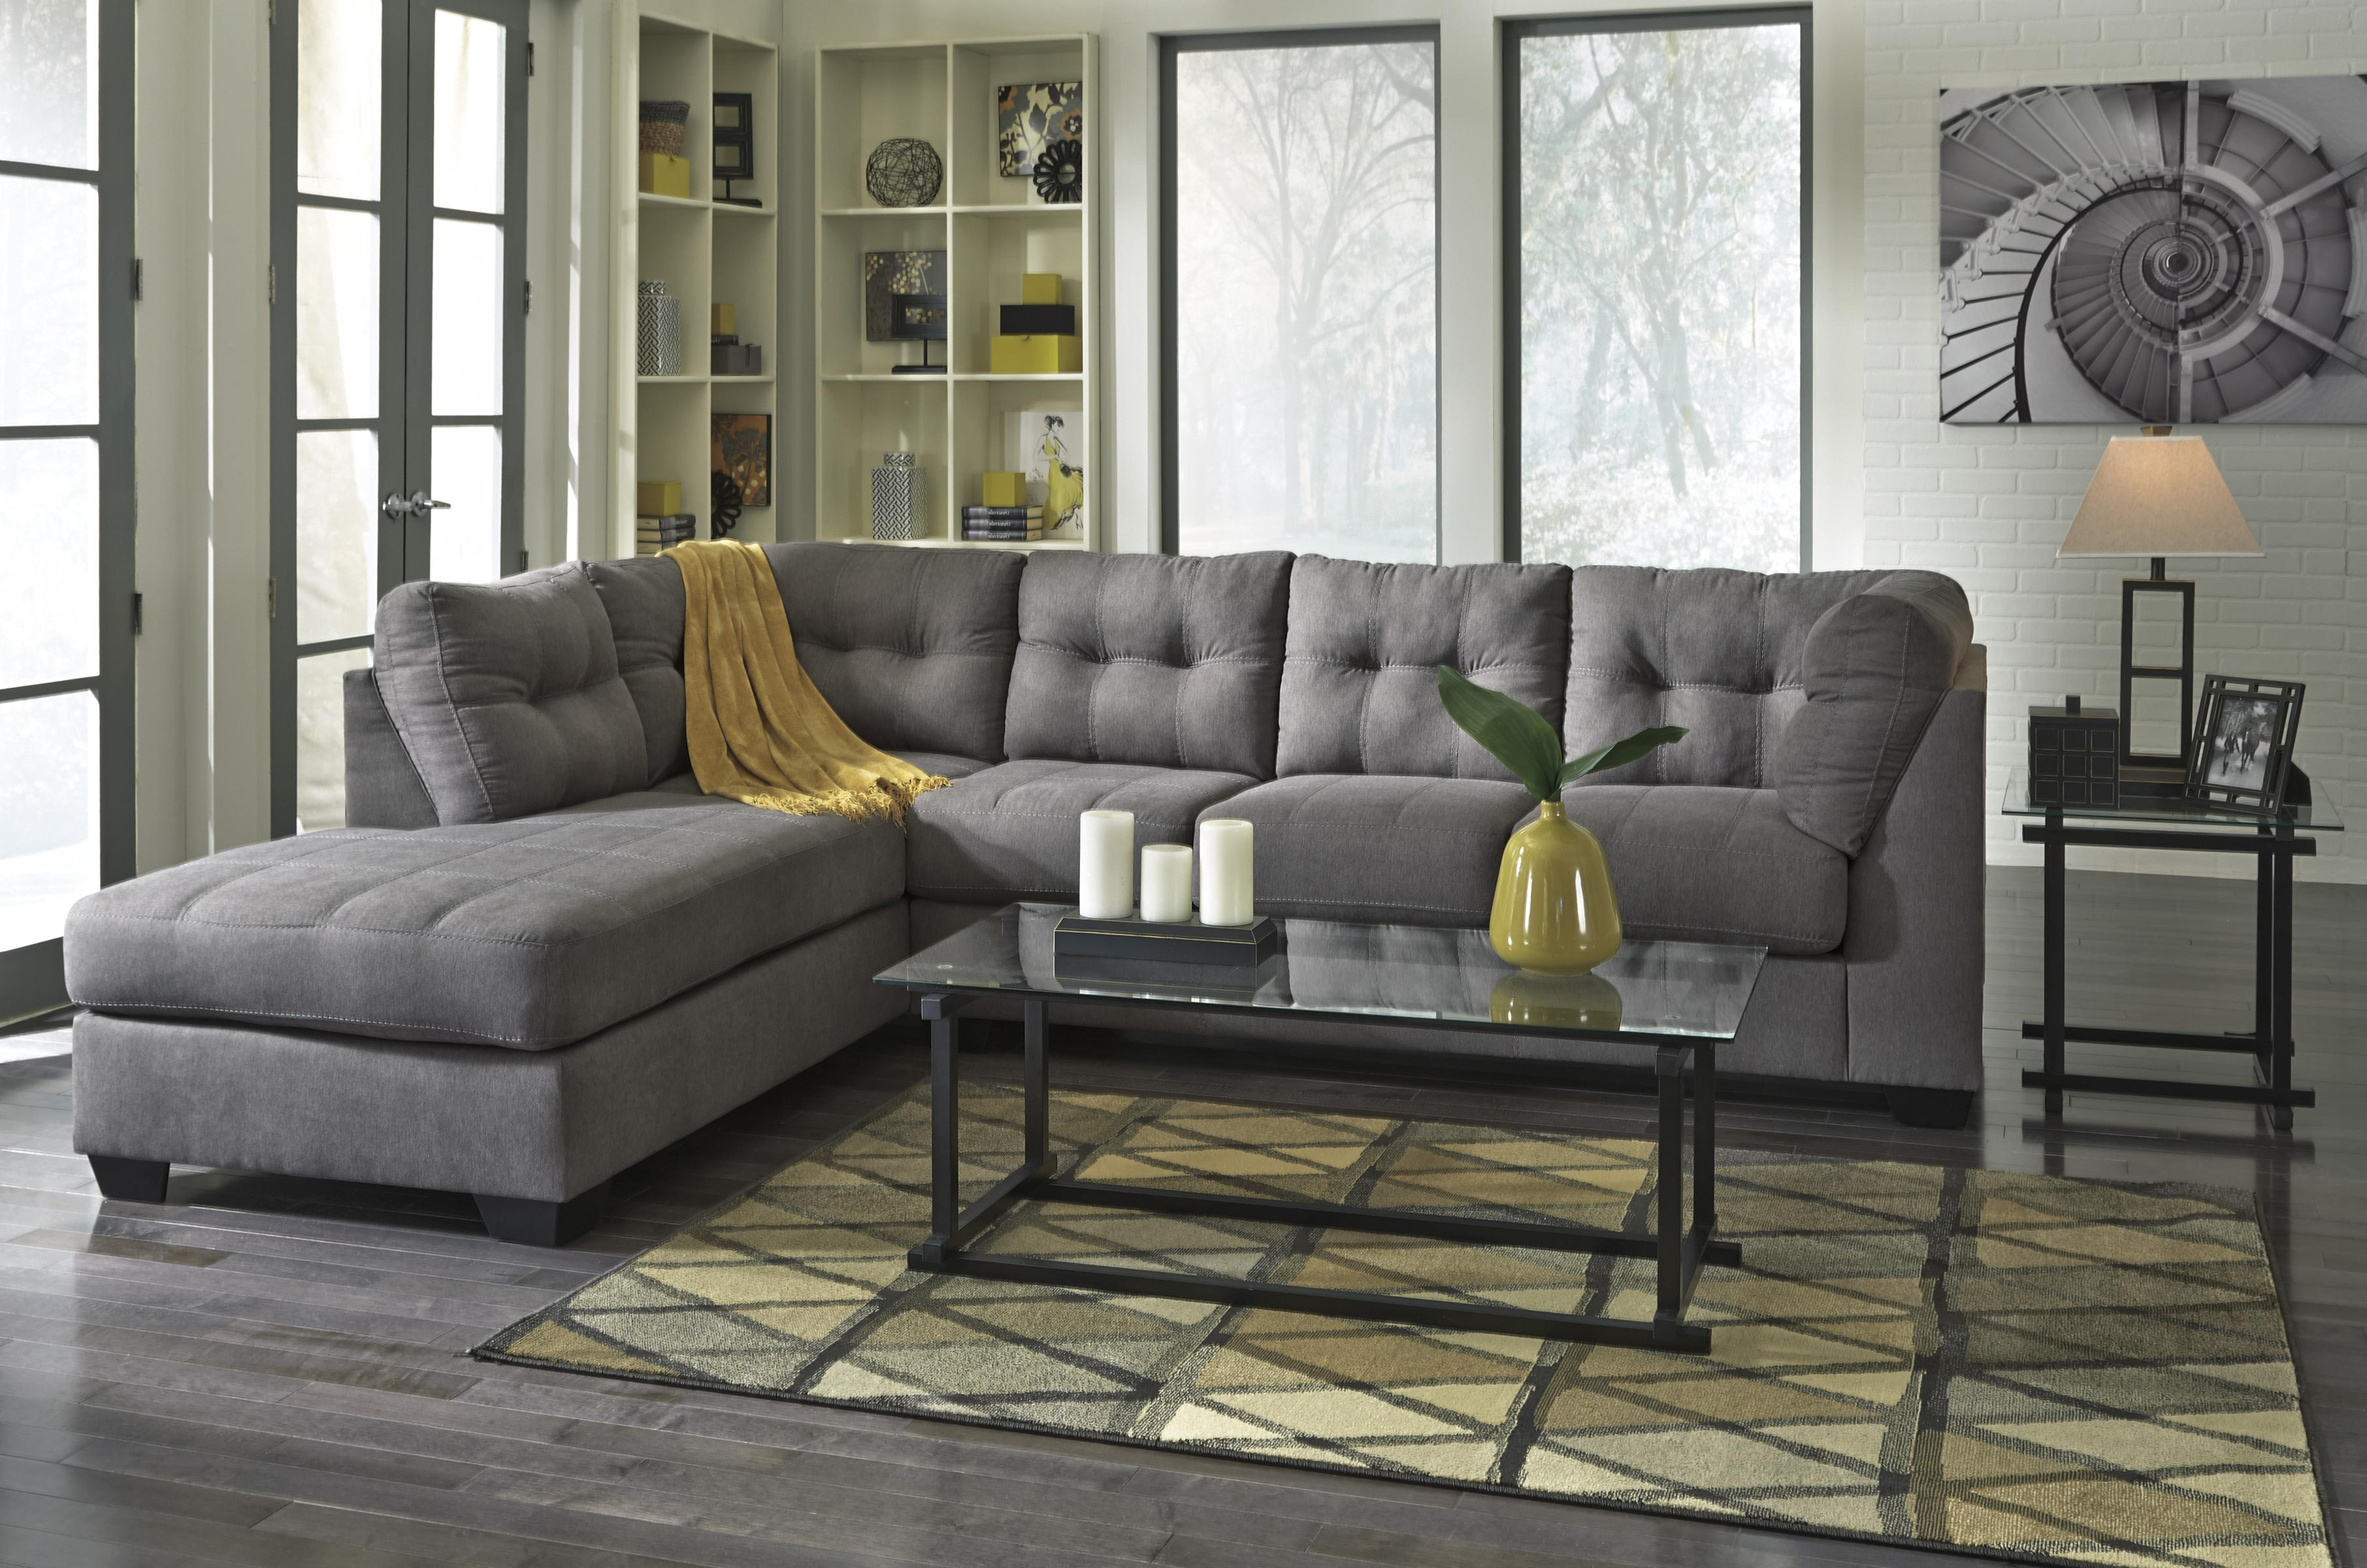 Benchcraft By Ashley Maier Charcoal 2 Piece Sectional